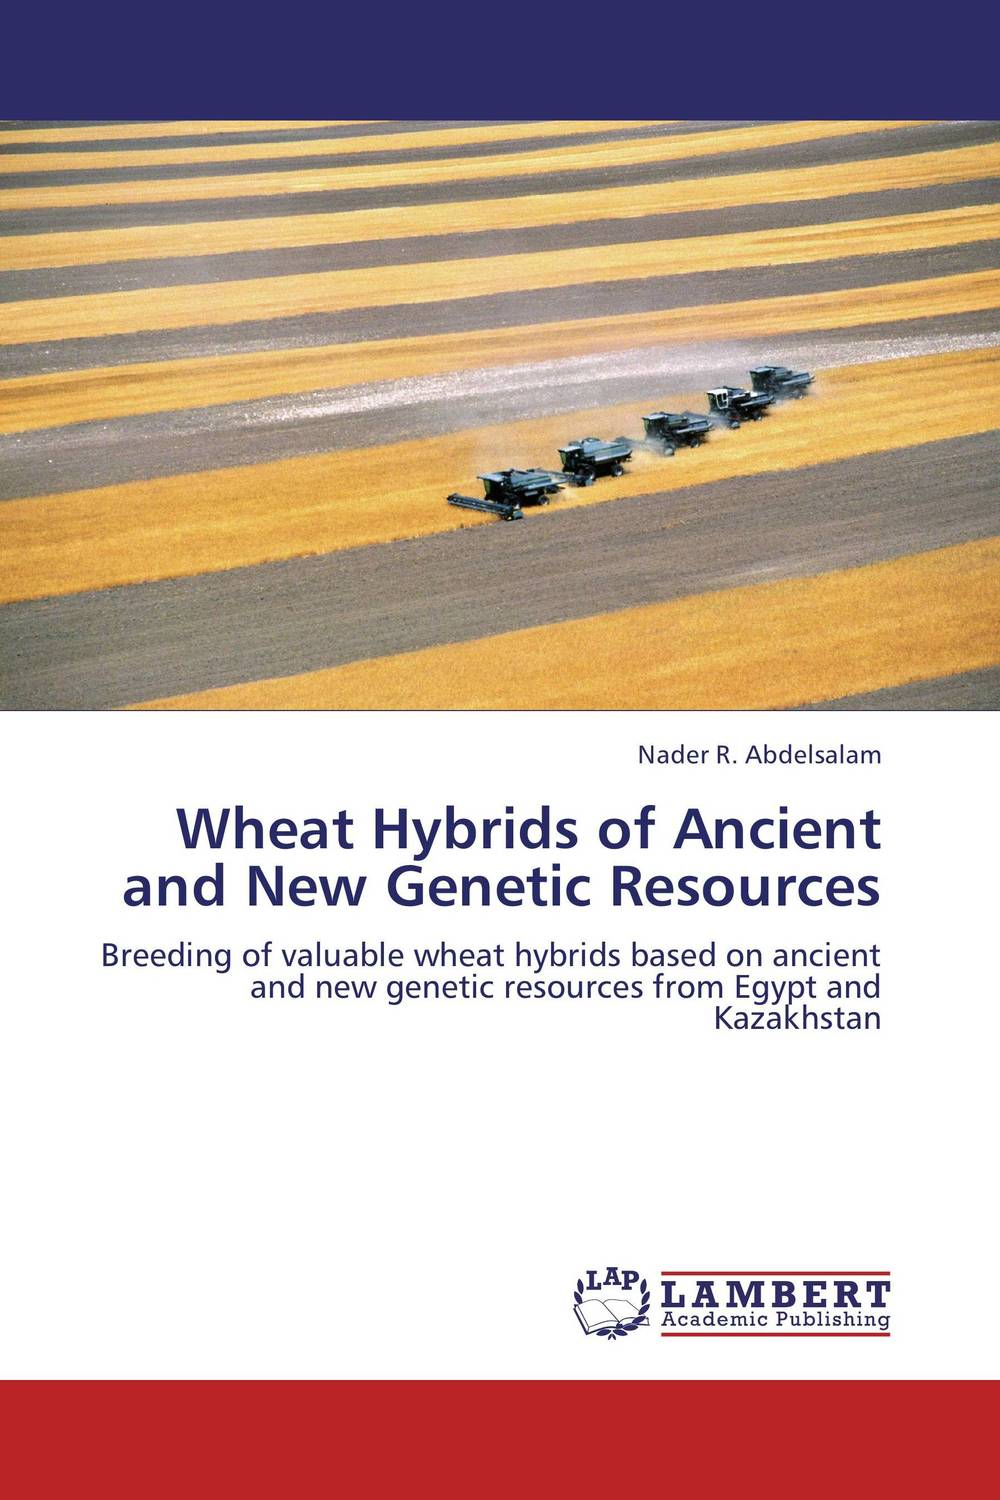 Wheat Hybrids of Ancient and New Genetic Resources evaluation of lucern as a predator source for wheat aphids